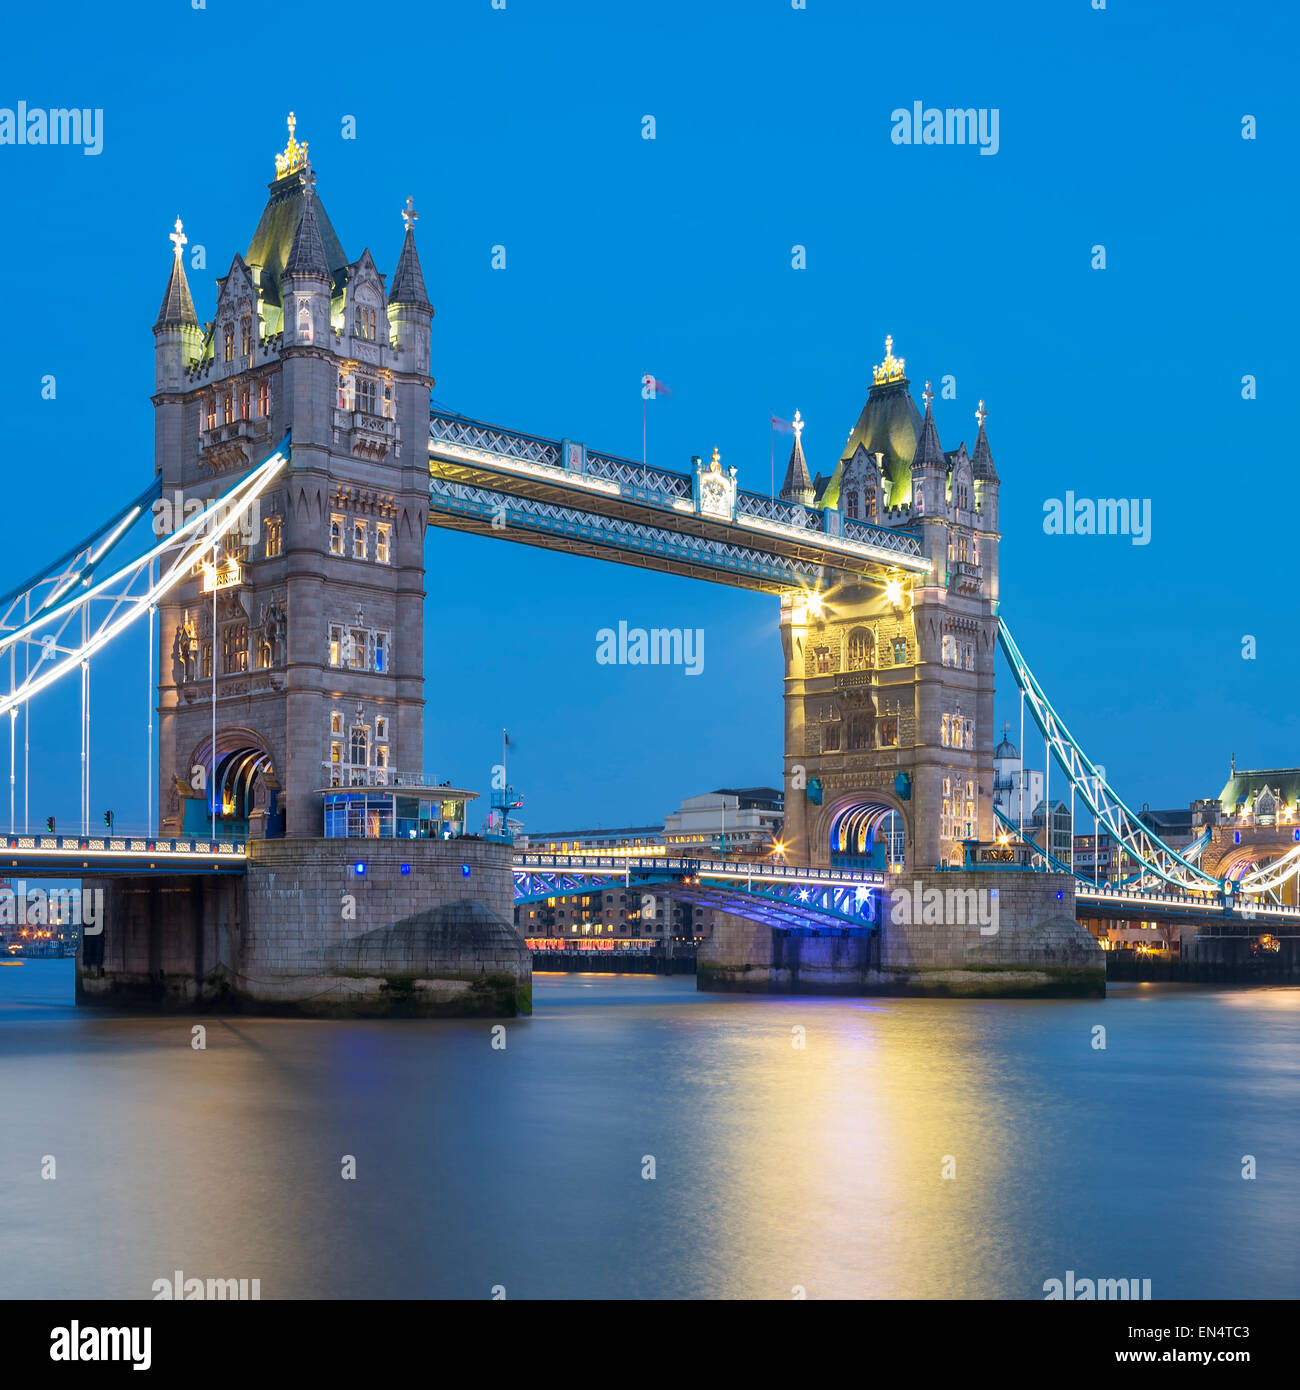 Famous Tower Bridge in the evening, London, England - Stock Image